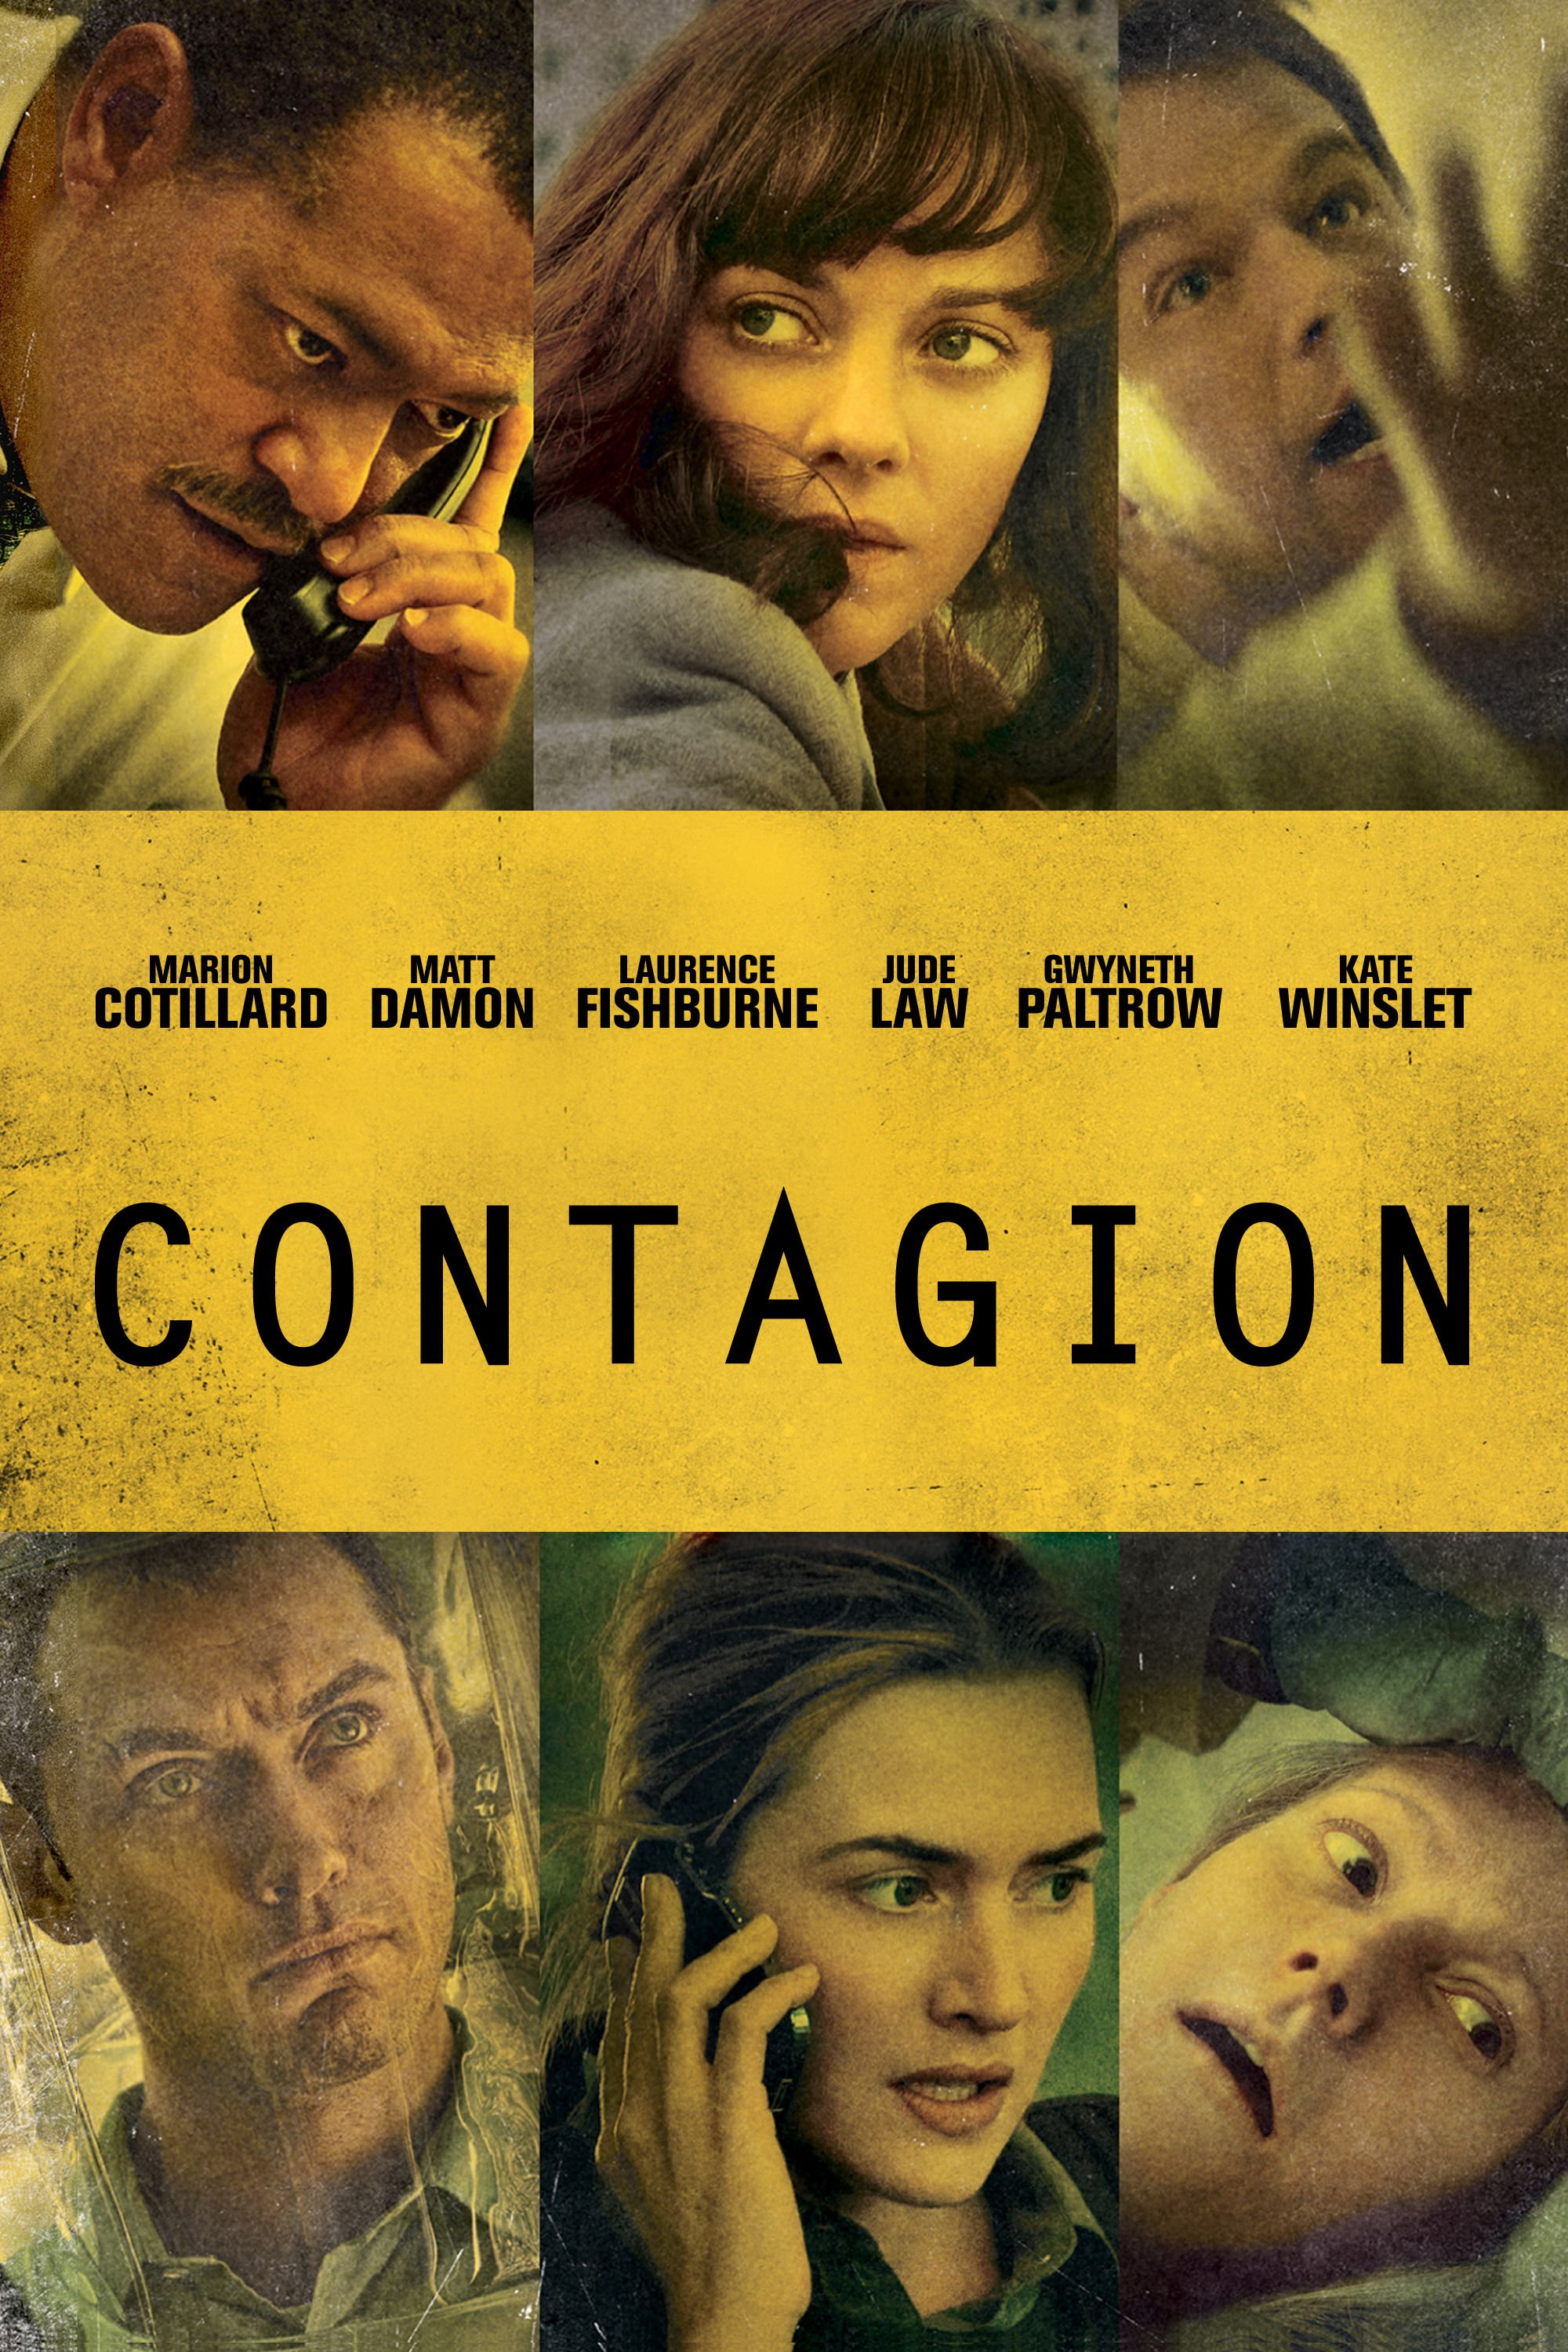 contagion-filming-locations-itunes-dvd-poster